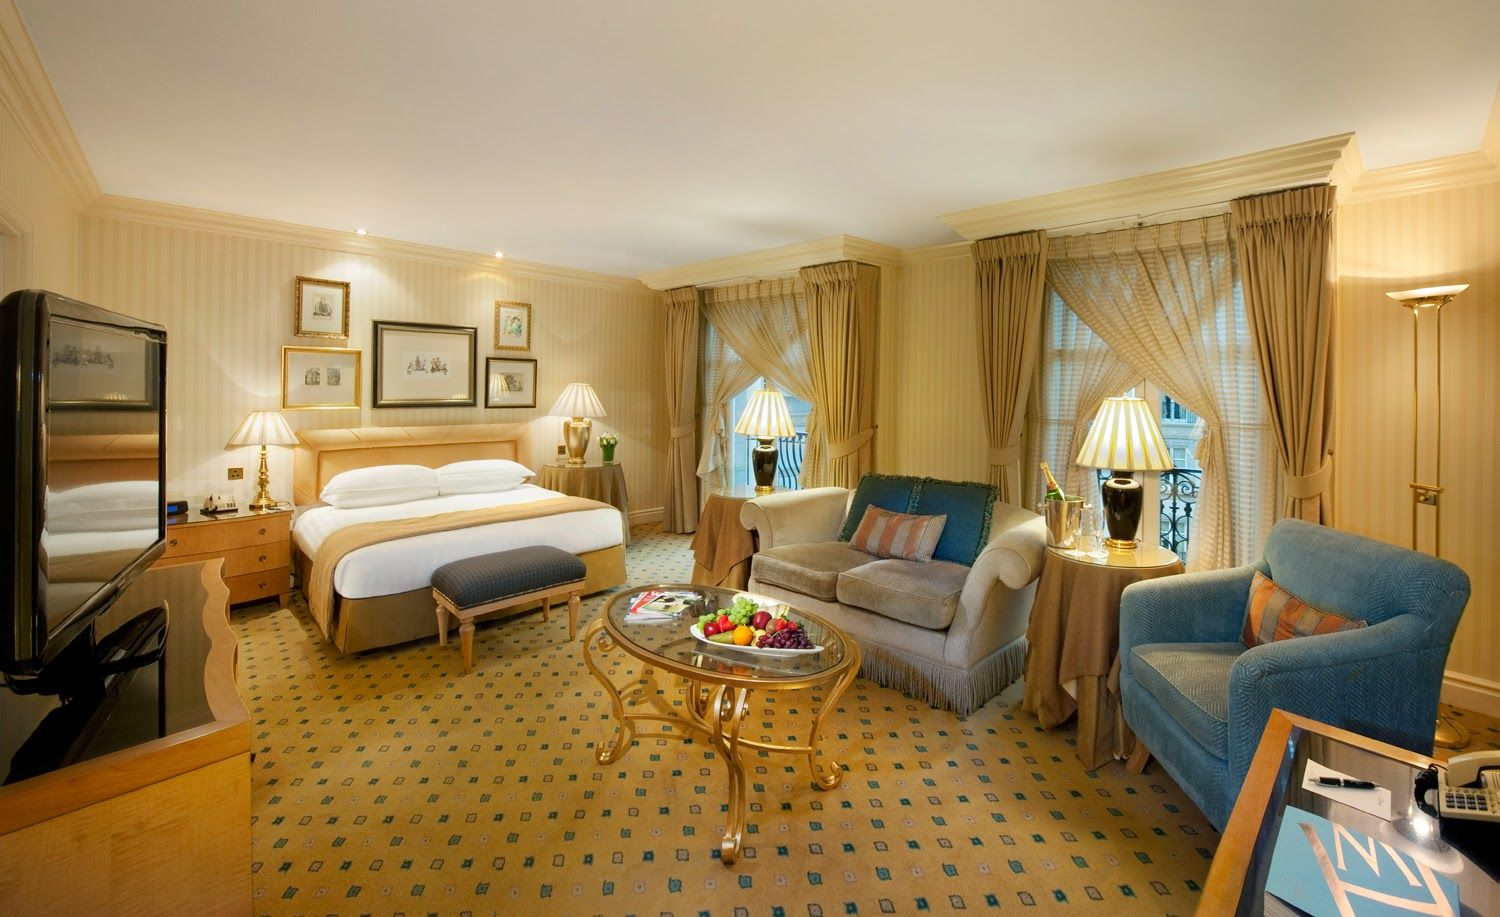 Executive At 5 Star Hotel Landmark London This Hotels Address Is 222 Marylebone Road Hyde Park And Have 300 Rooms